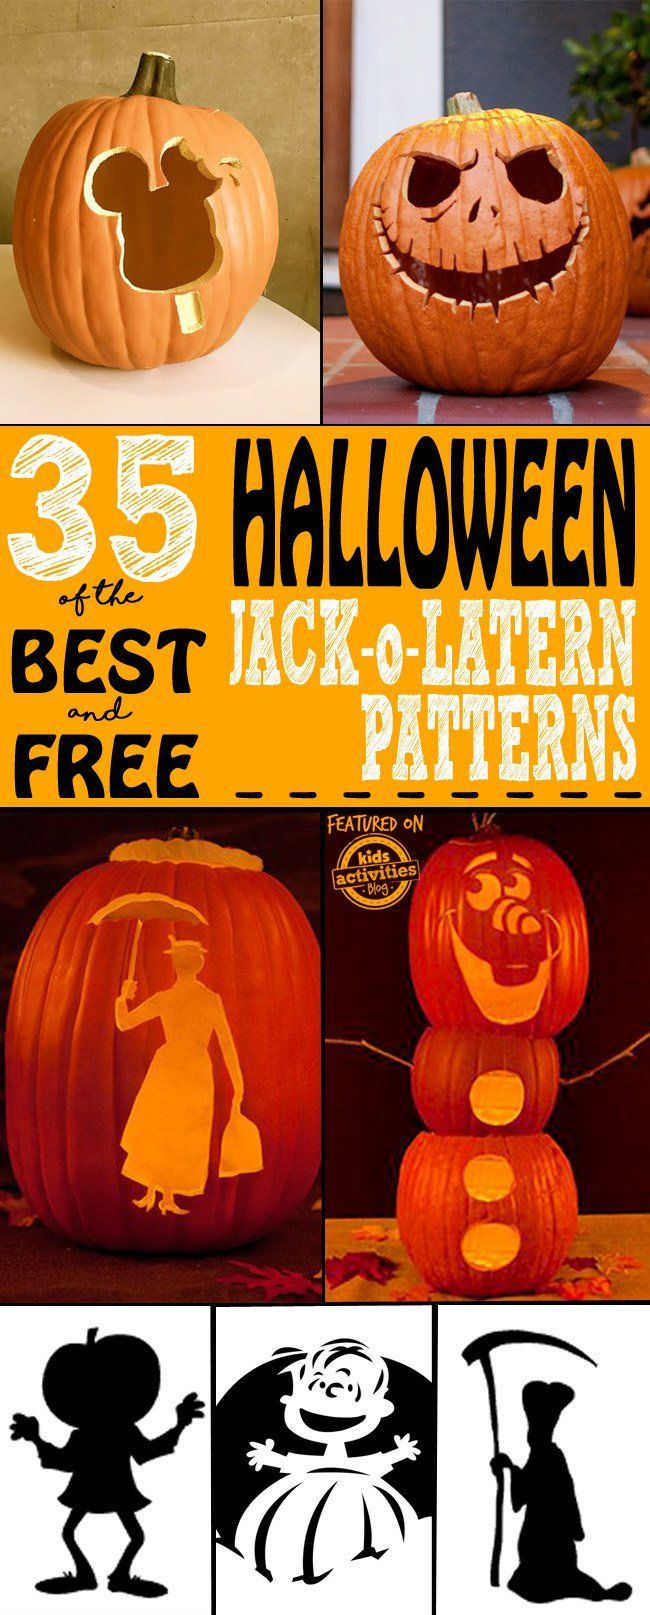 35 OF THE BEST JACK O LANTERN PATTERNS | Calabazas, Día de muertos y ...